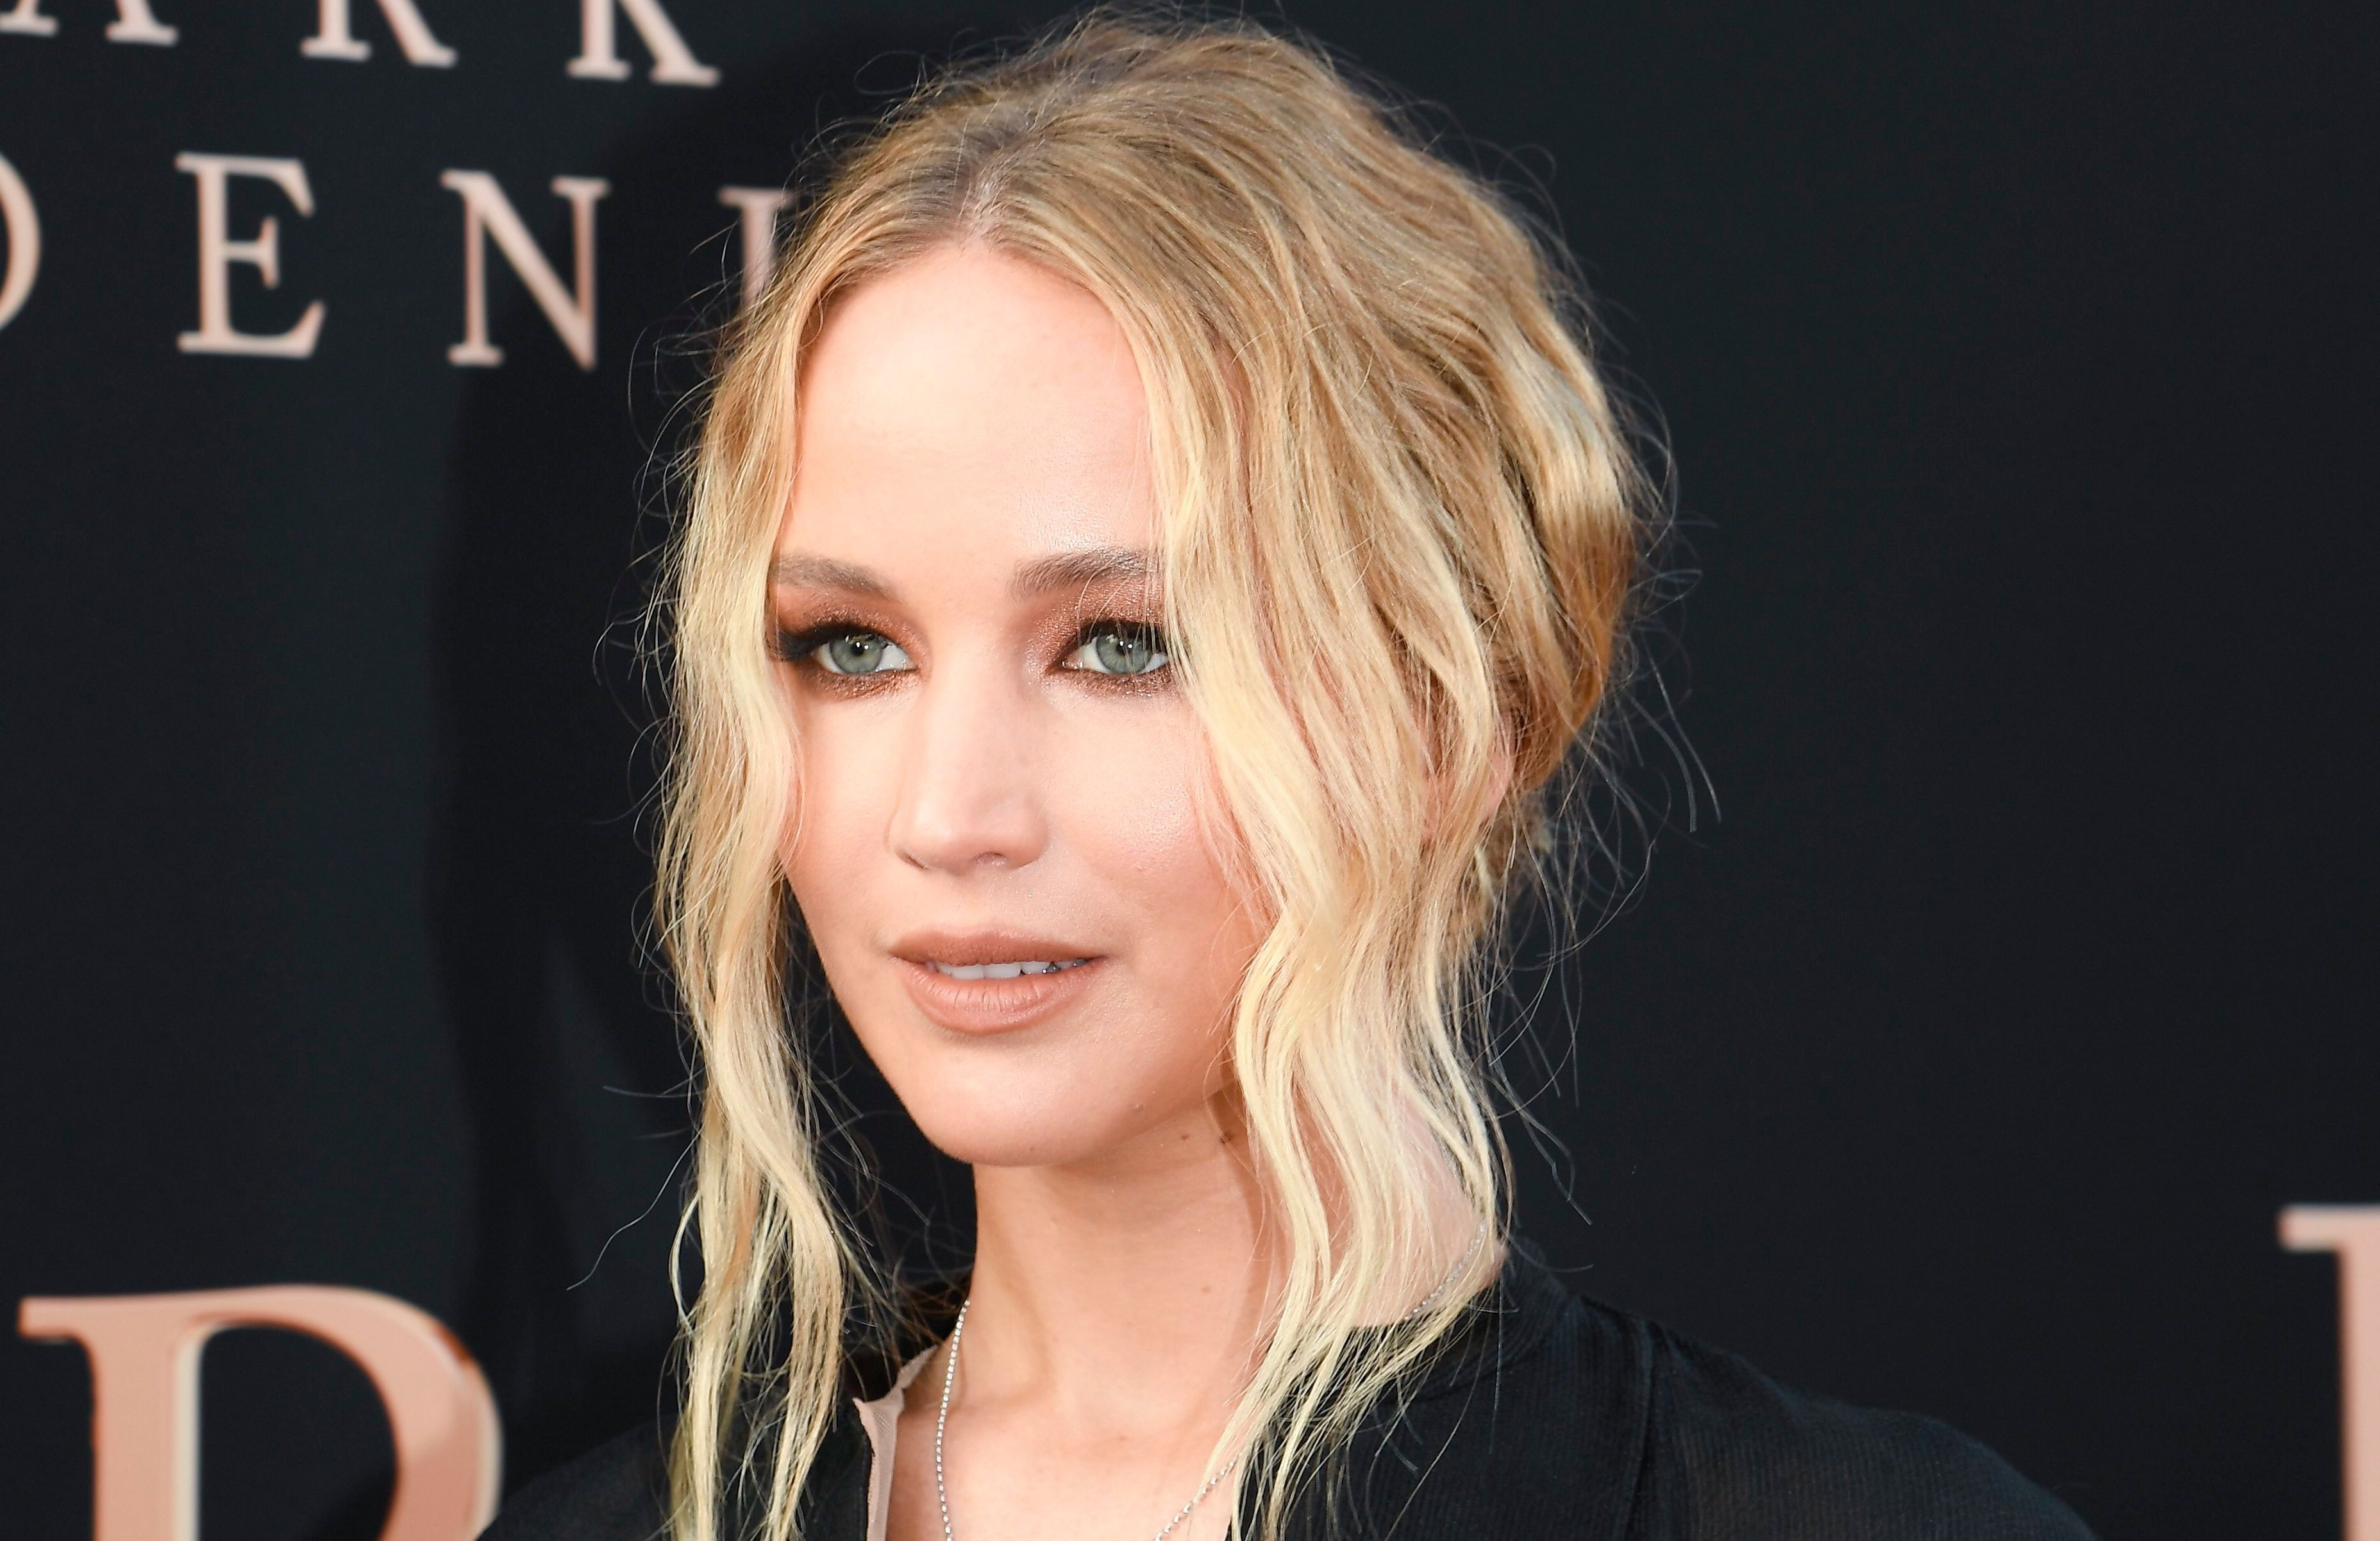 Jennifer Lawrence to Produce and Star in New Paolo Sorrentino Film 'Mob Girl'